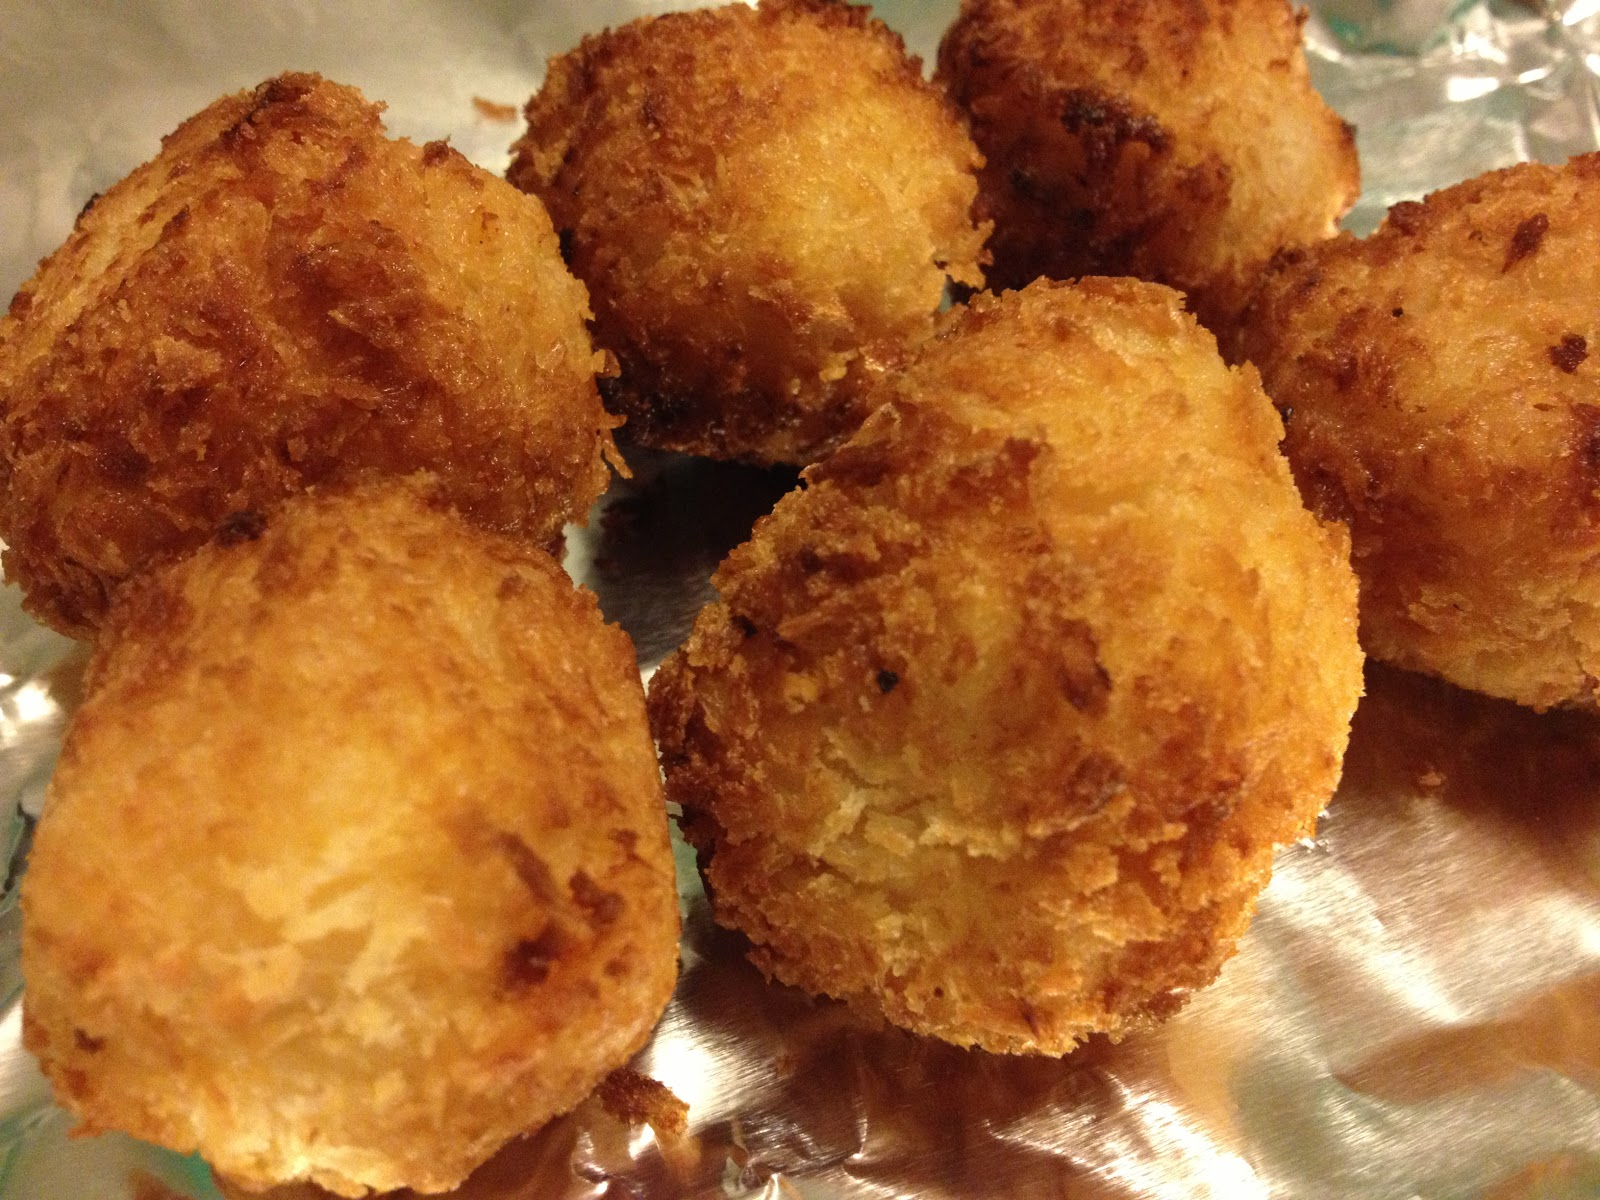 366 Meals We Made: #330 Fried Mac and Cheese Balls